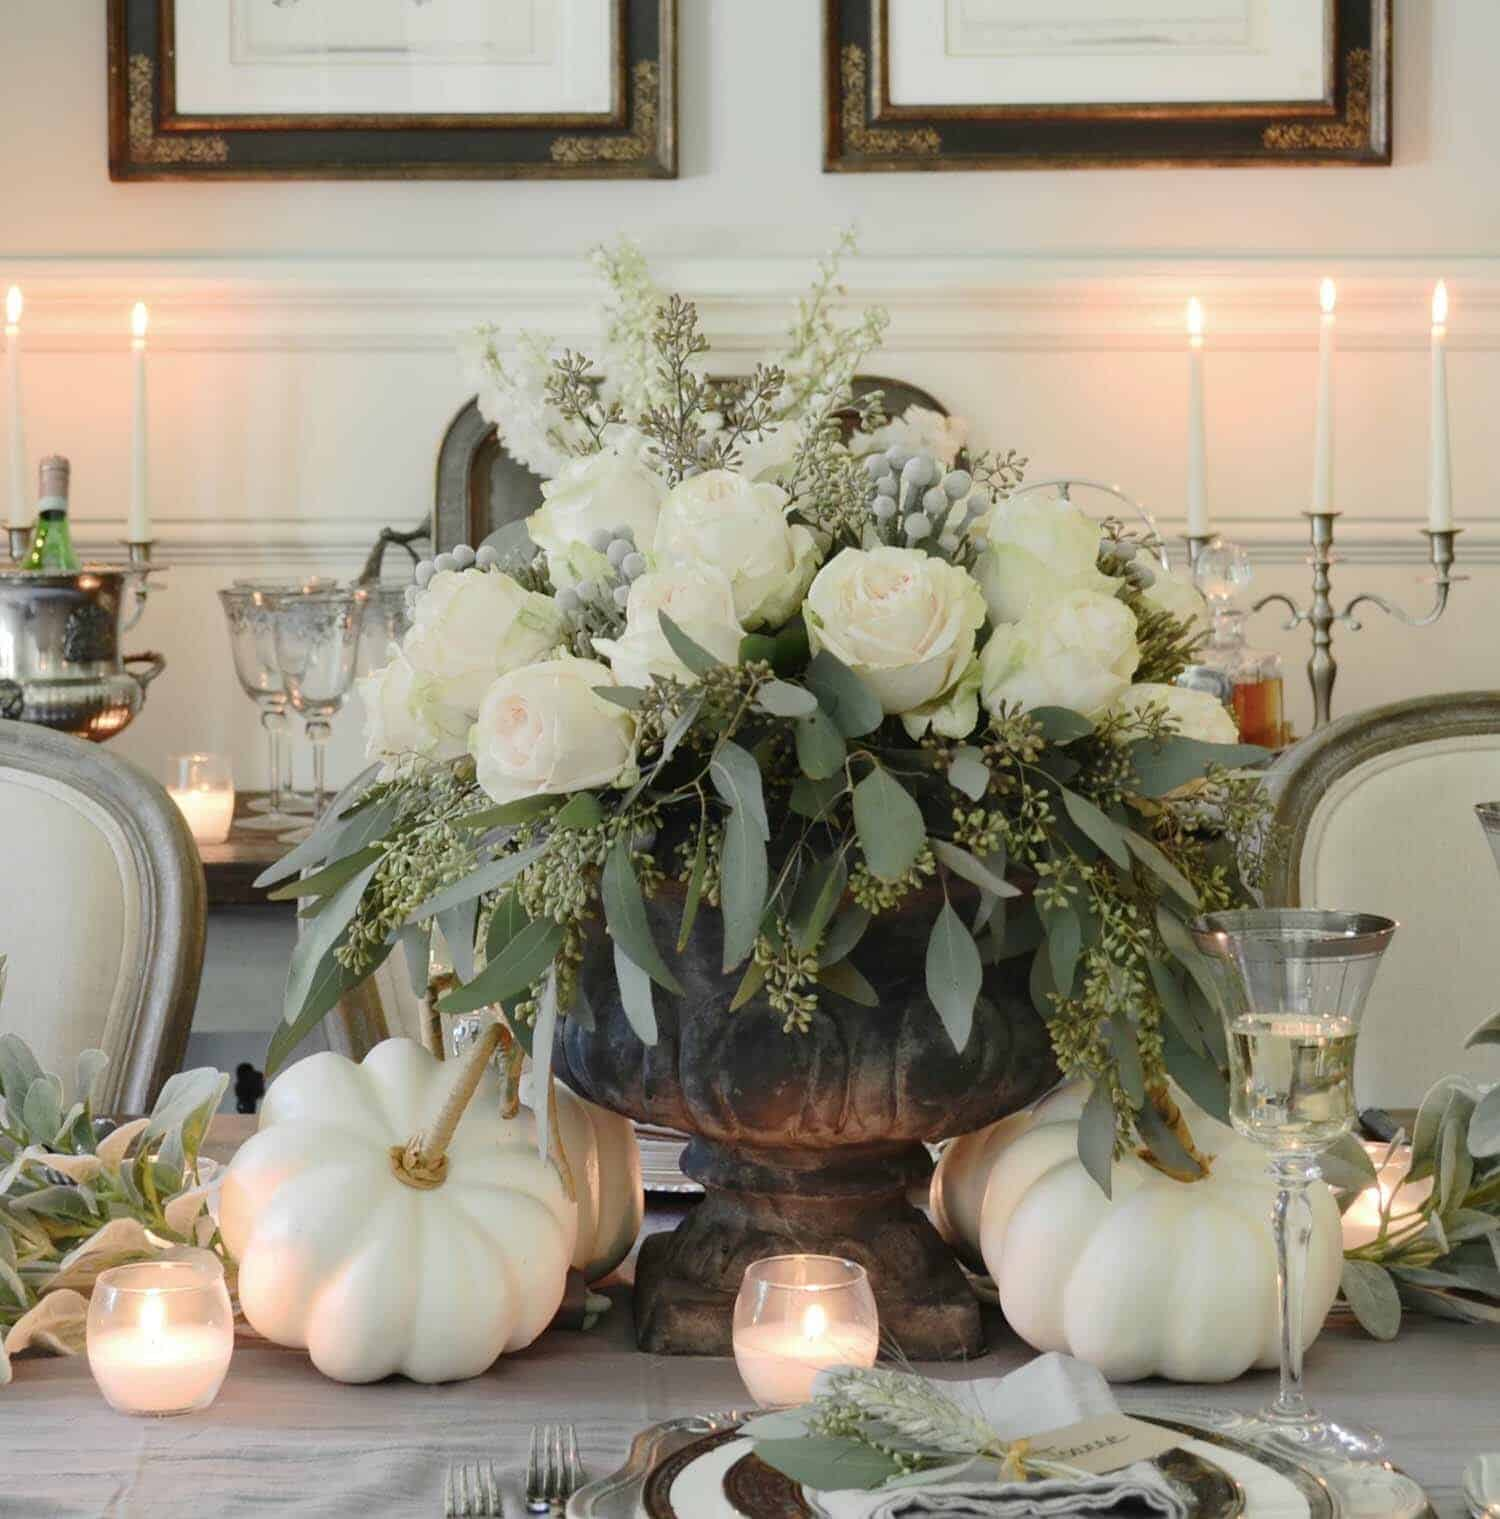 25+ Beautiful And Elegant Centerpiece Ideas For A